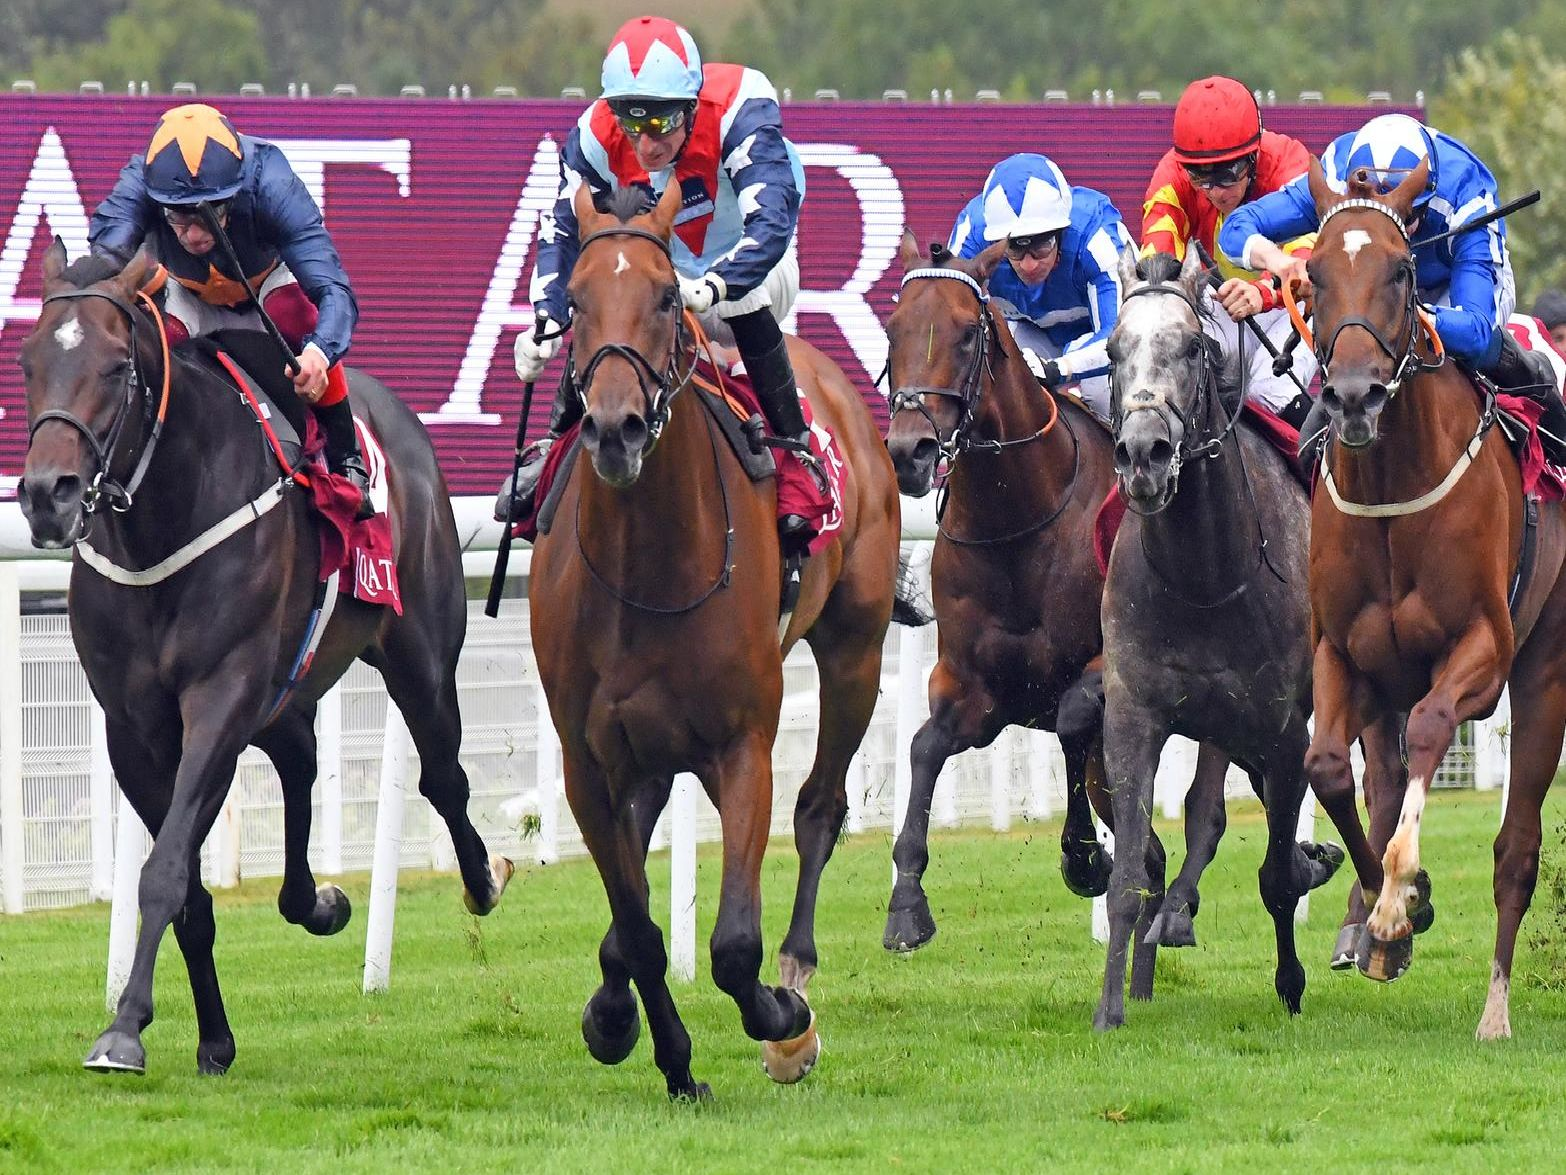 The Qatar Goodwood Festival / Picture by Malcolm Wells